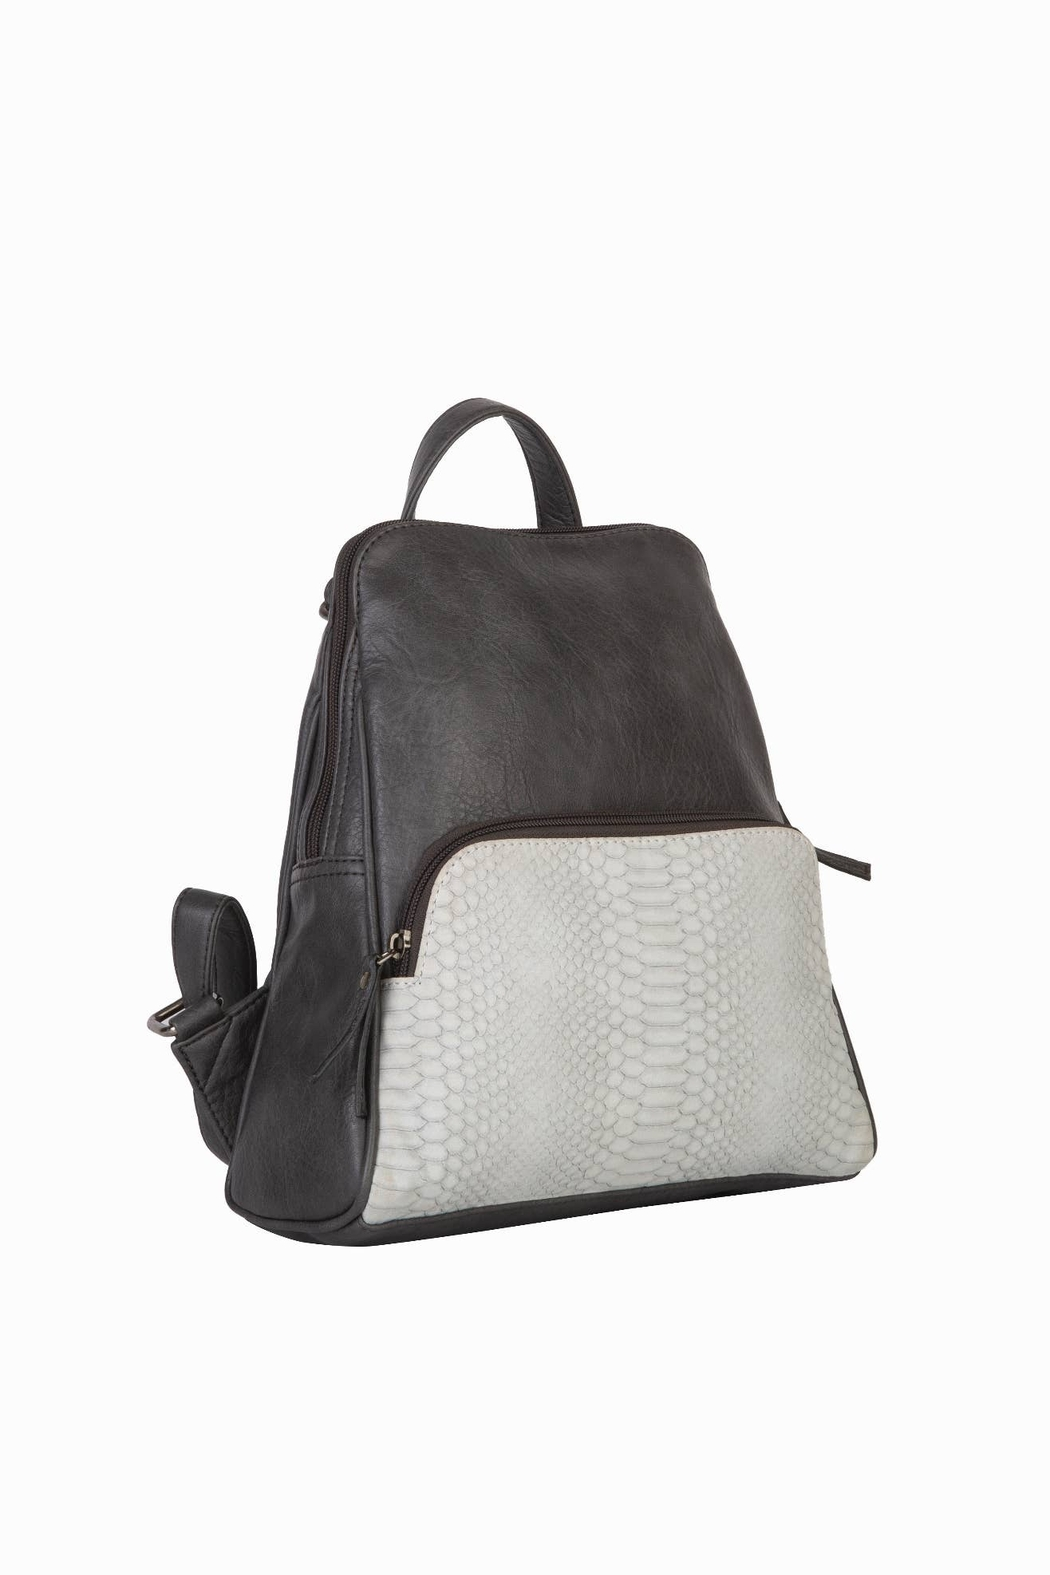 Mona B Vale Vegan Leather Convertible Backpack - Front Full Image